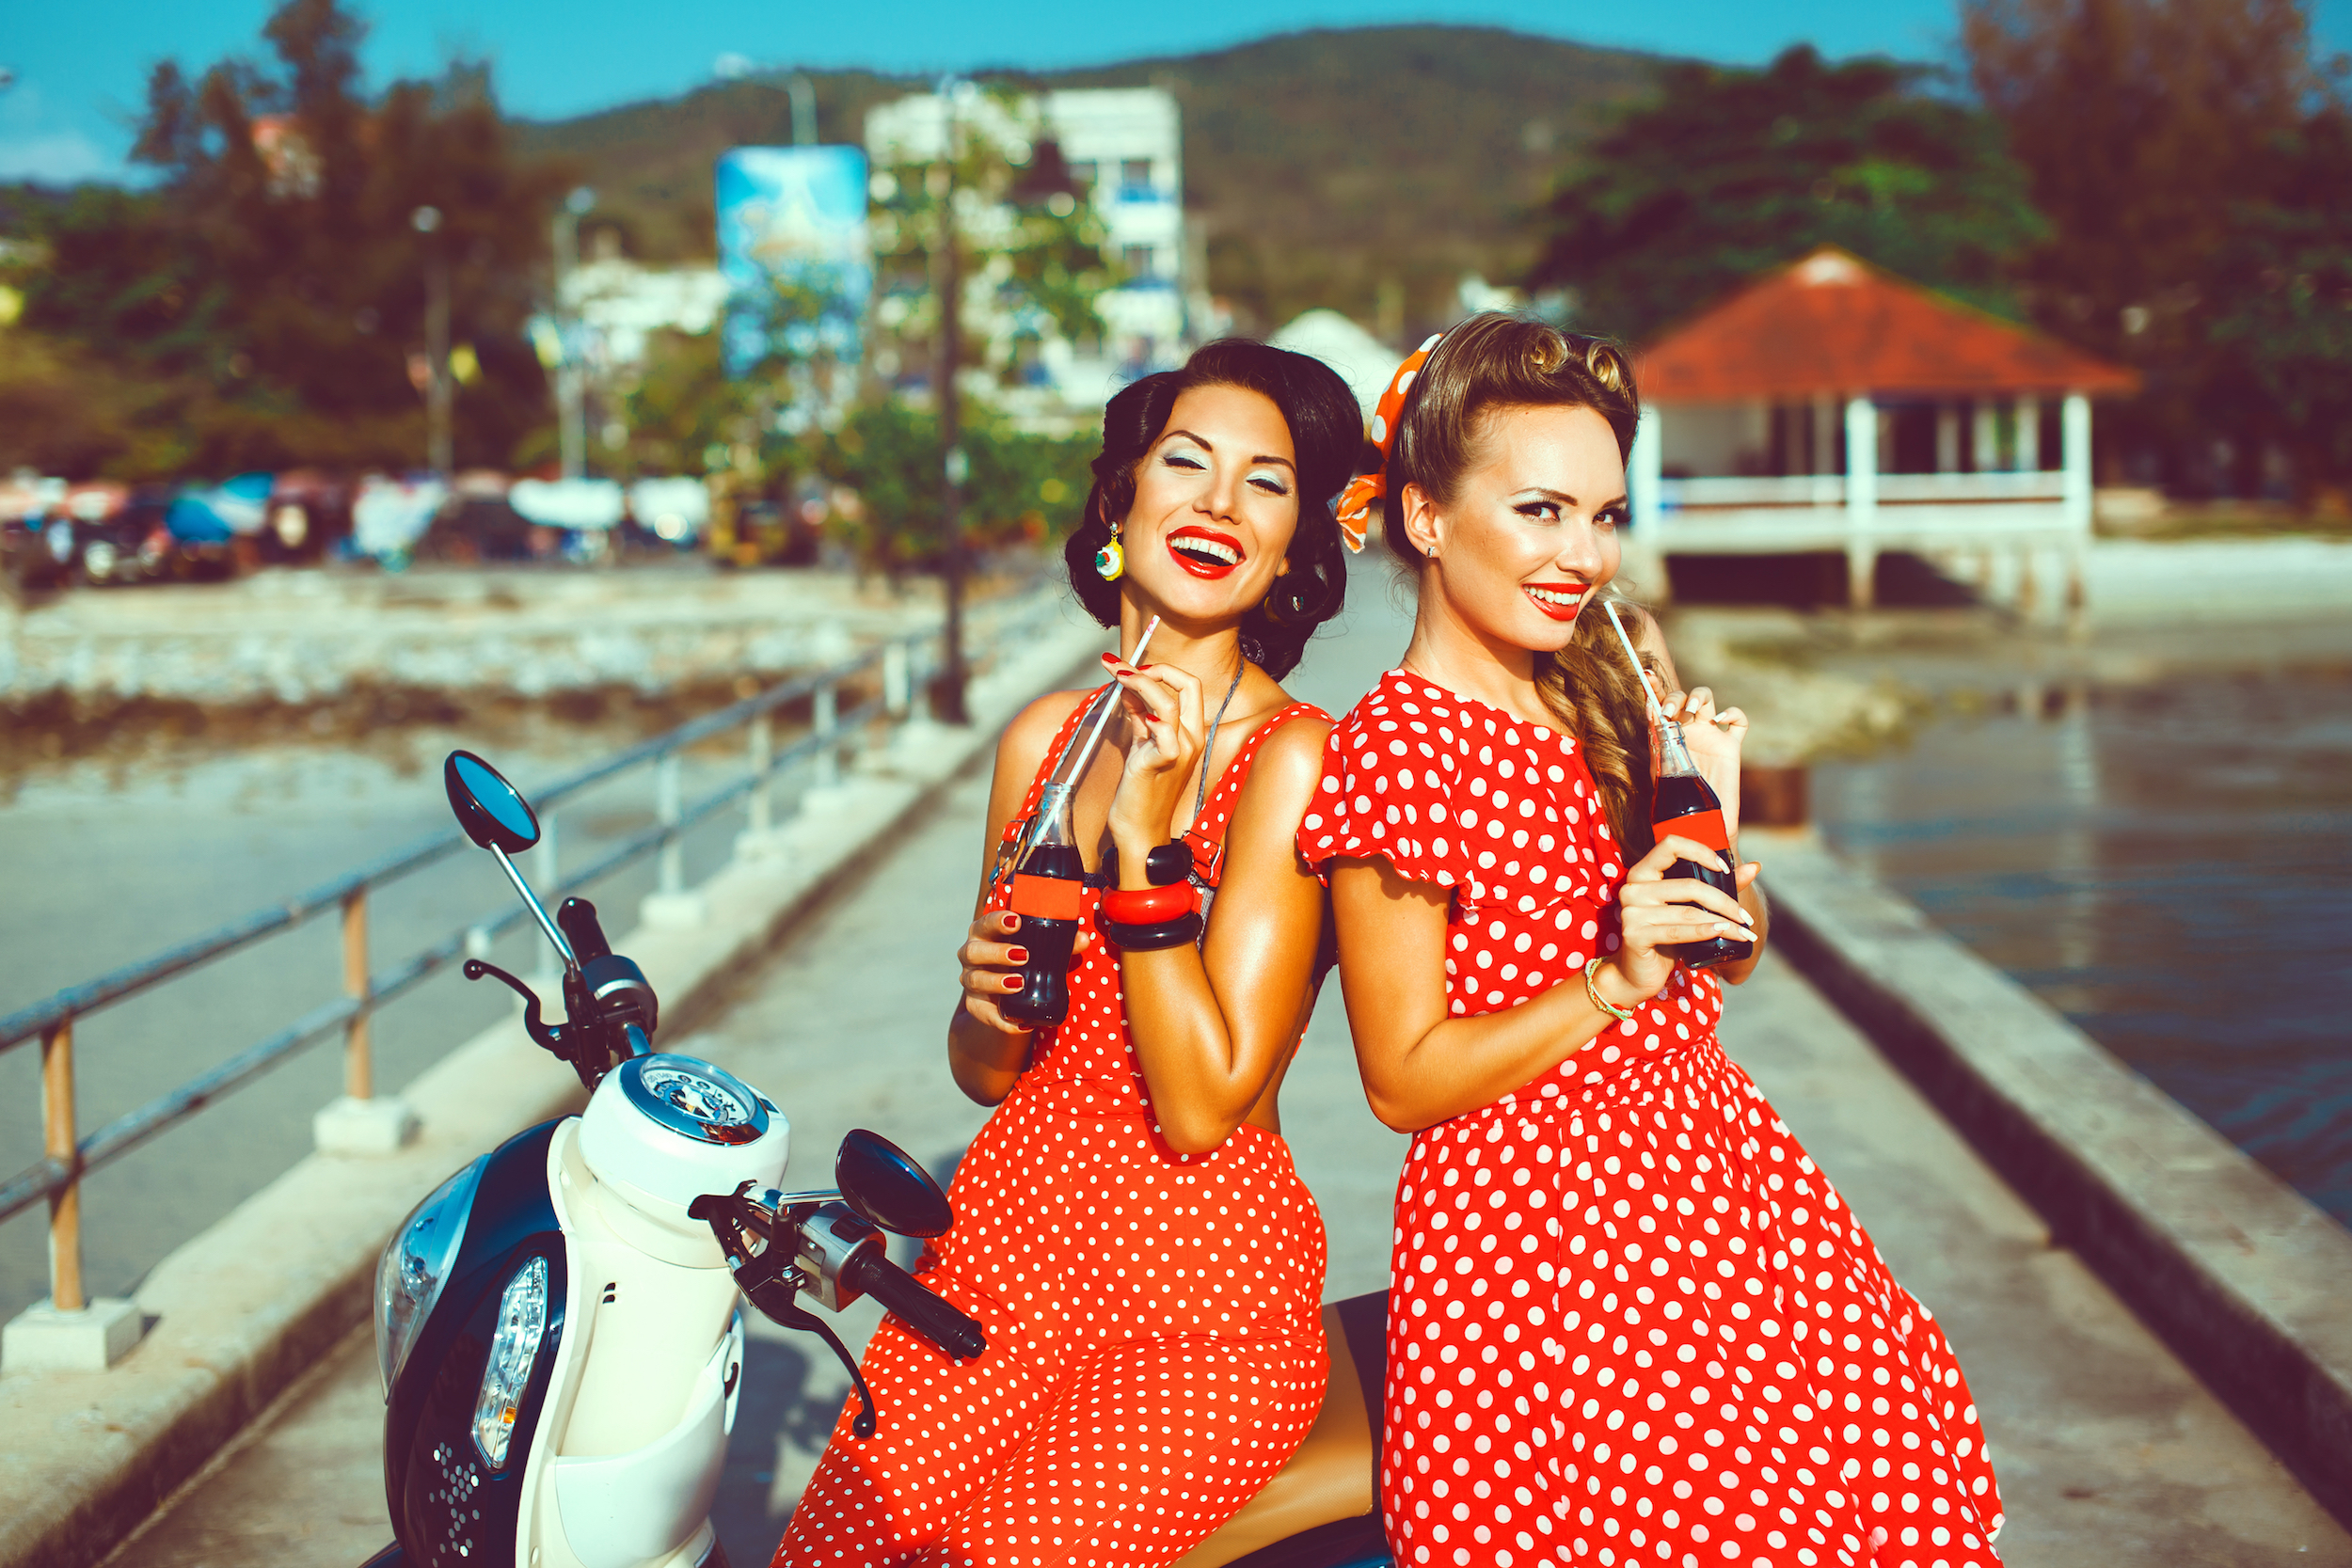 Two smiling women in pin-up attire drinking cola